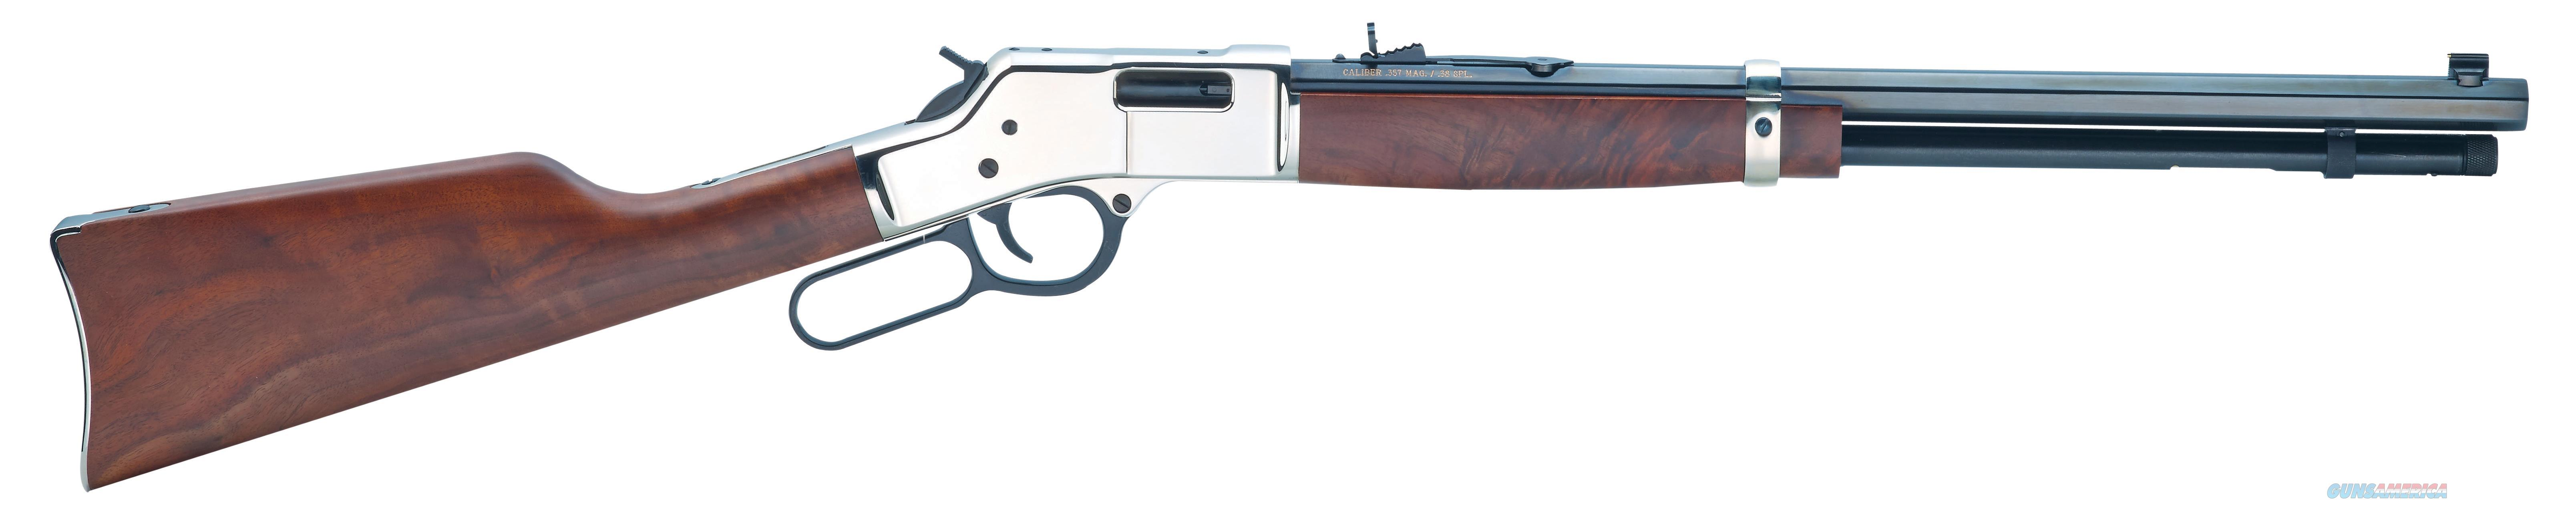 HENRY BIG BOY SILVER H006MS  Guns > Rifles > Henry Rifles - Replica